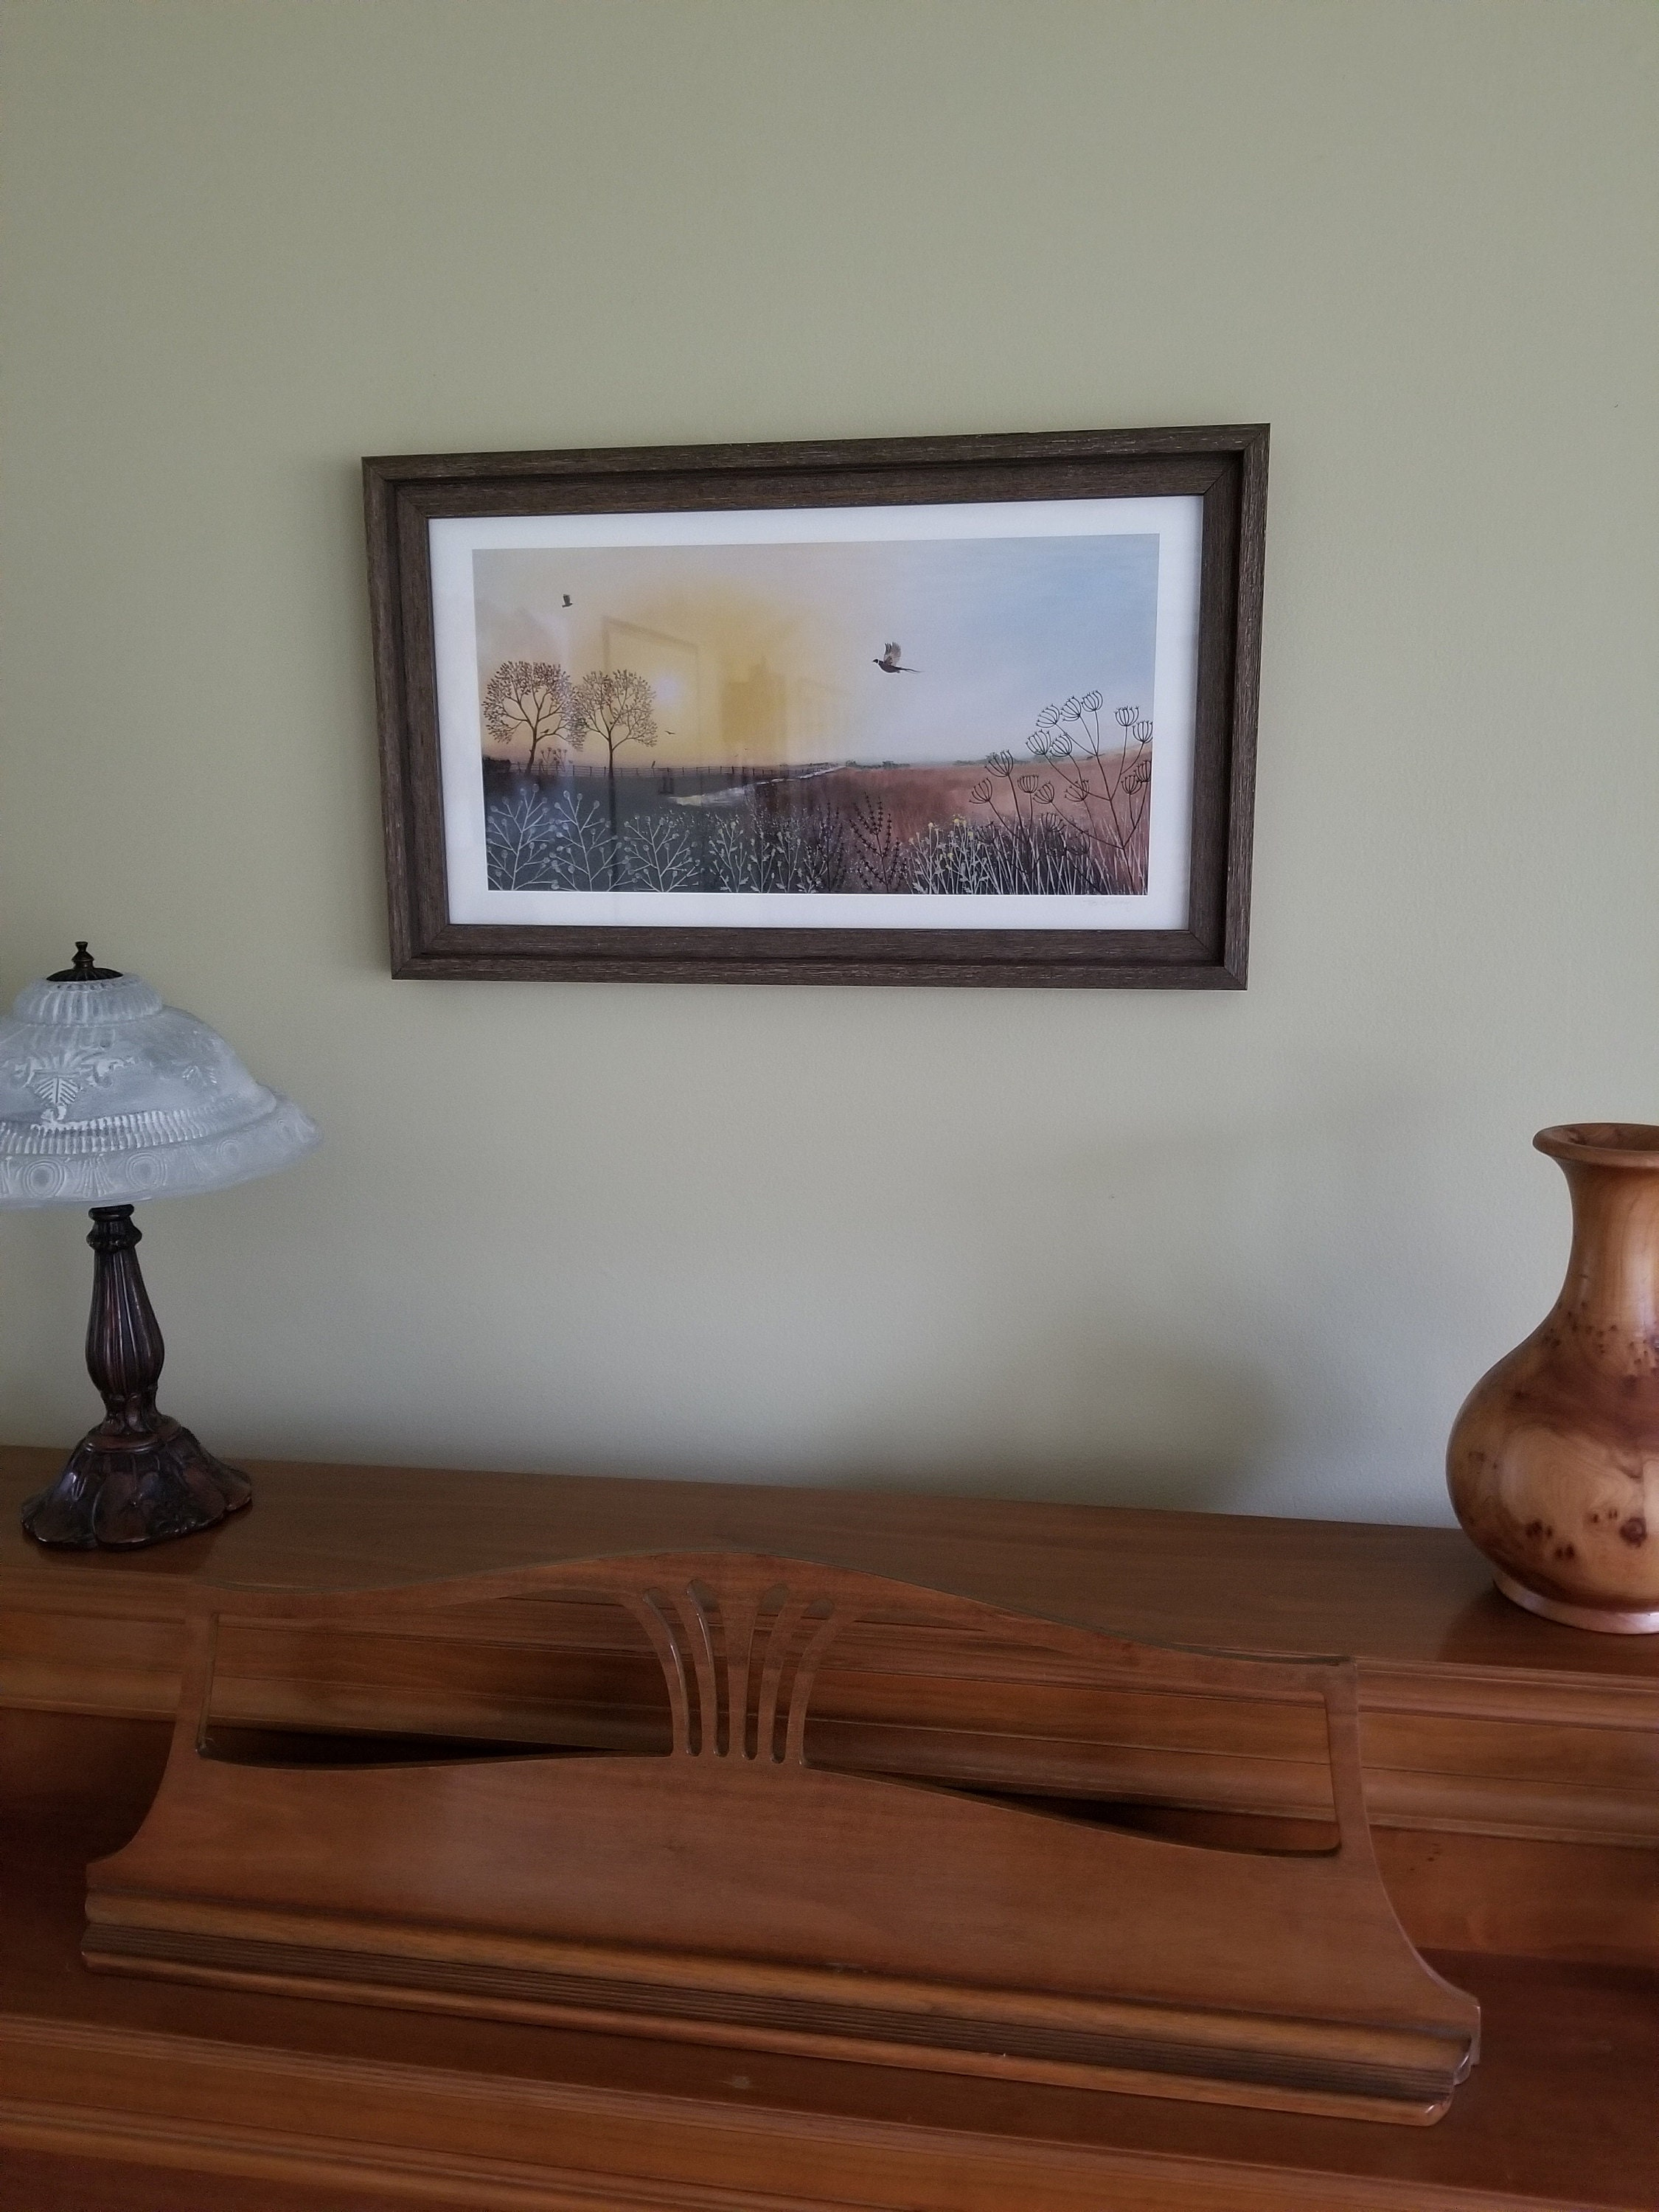 Trudie Bills added a photo of their purchase